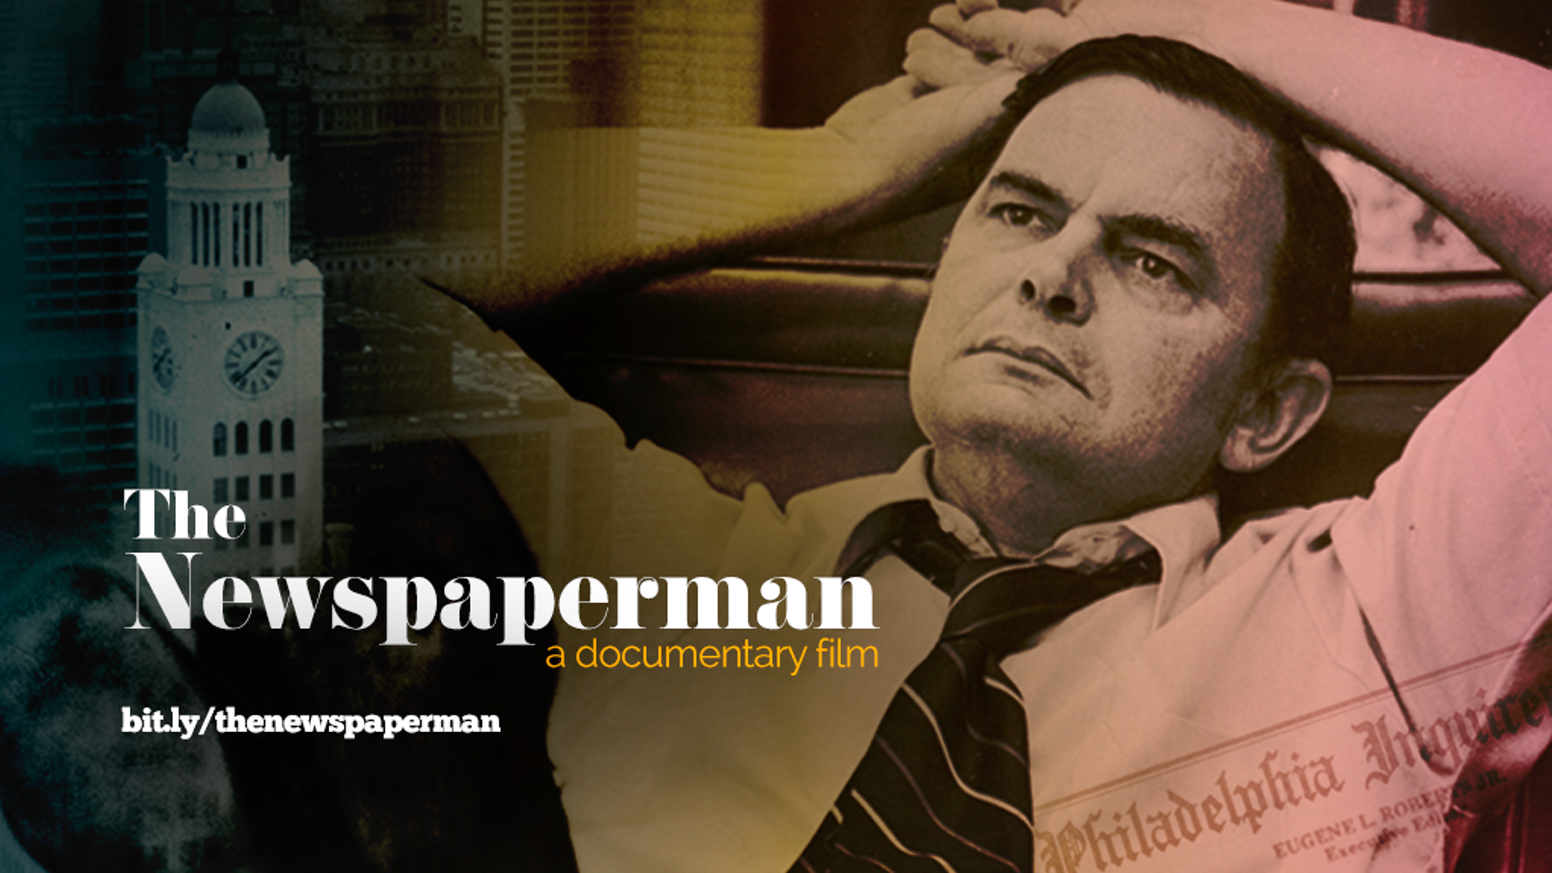 The Newspaperman | a documentary film by David Layton & Mike